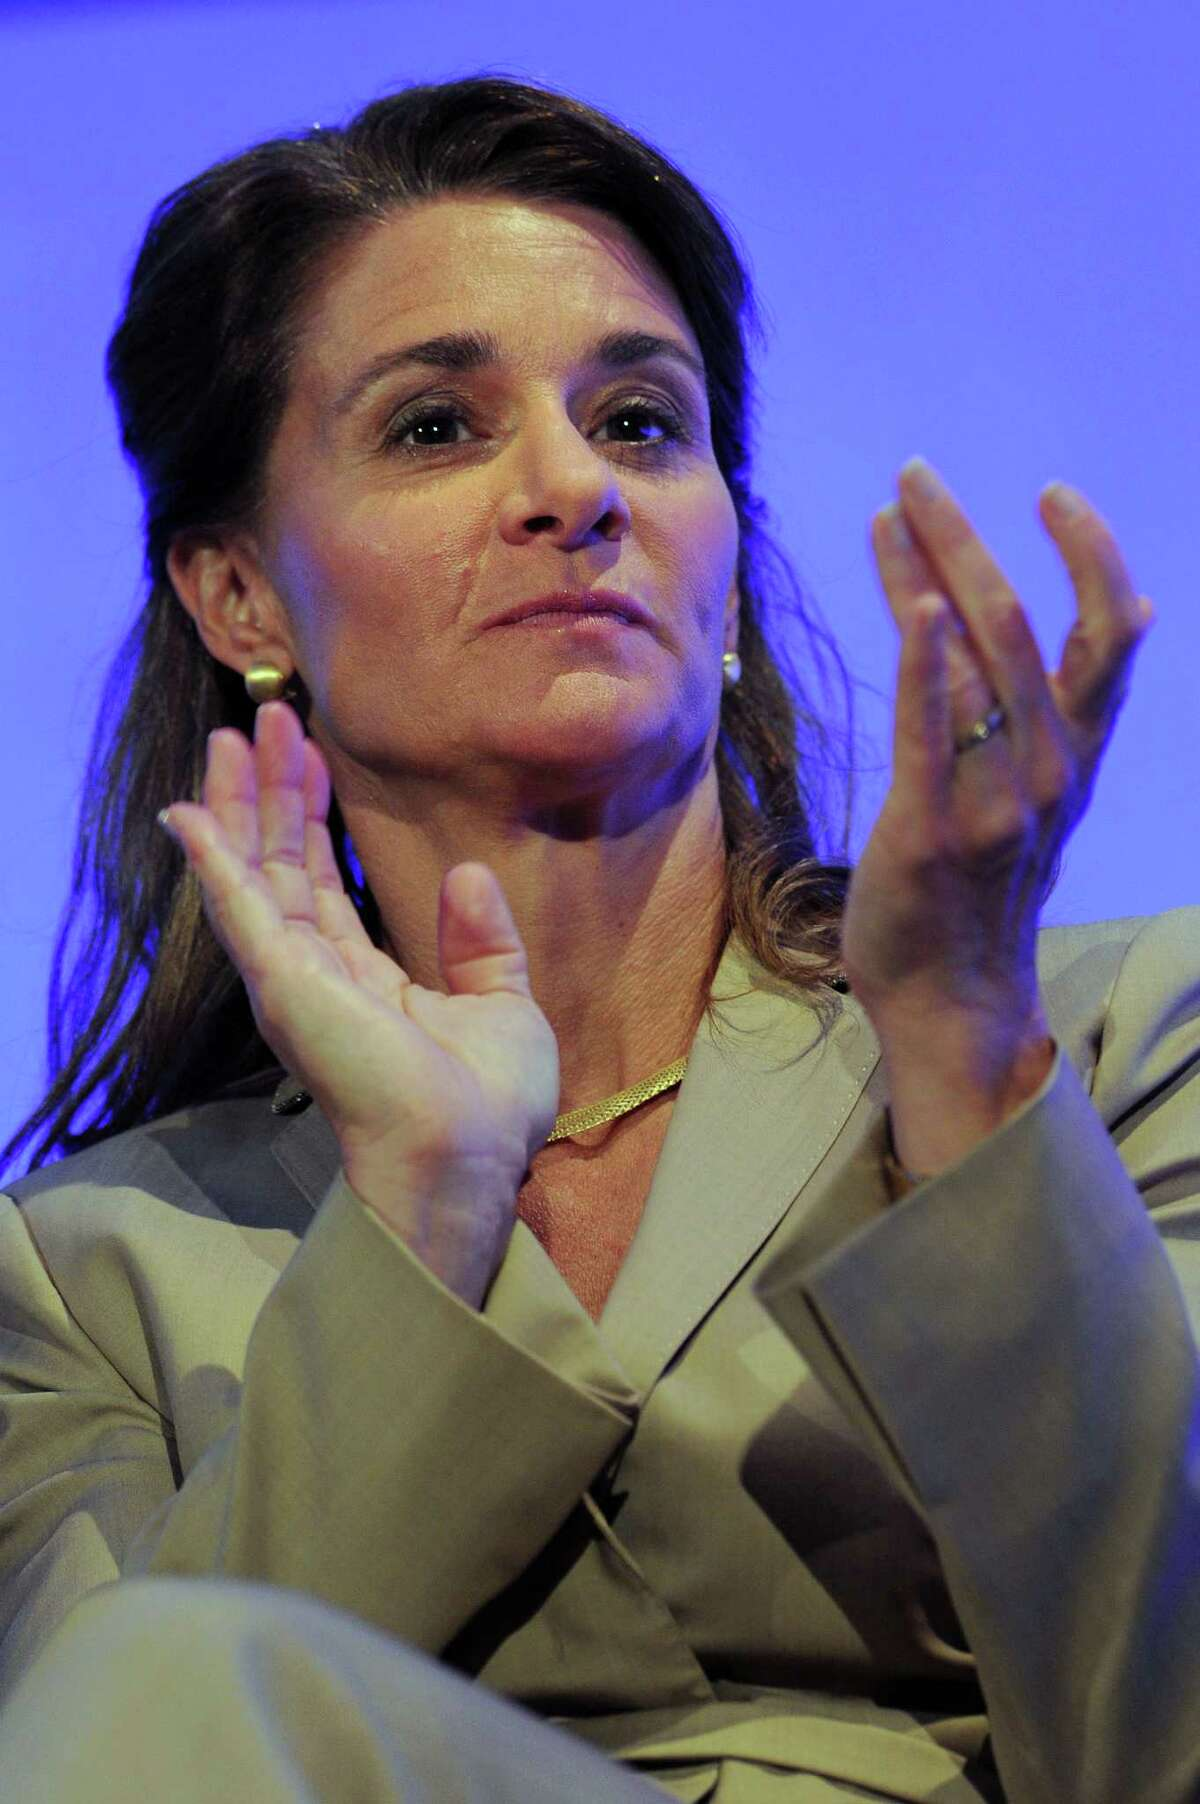 Melinda Gates, co-founder and co-chair of the Bill & Melinda Gates Foundation, applauds during the London Summit on Family Planning organized by the UK Government and the Bill & Melinda Gates Foundation with the United Nations Population Fund, UNFPA, in central London Wednesday July 11, 2012.